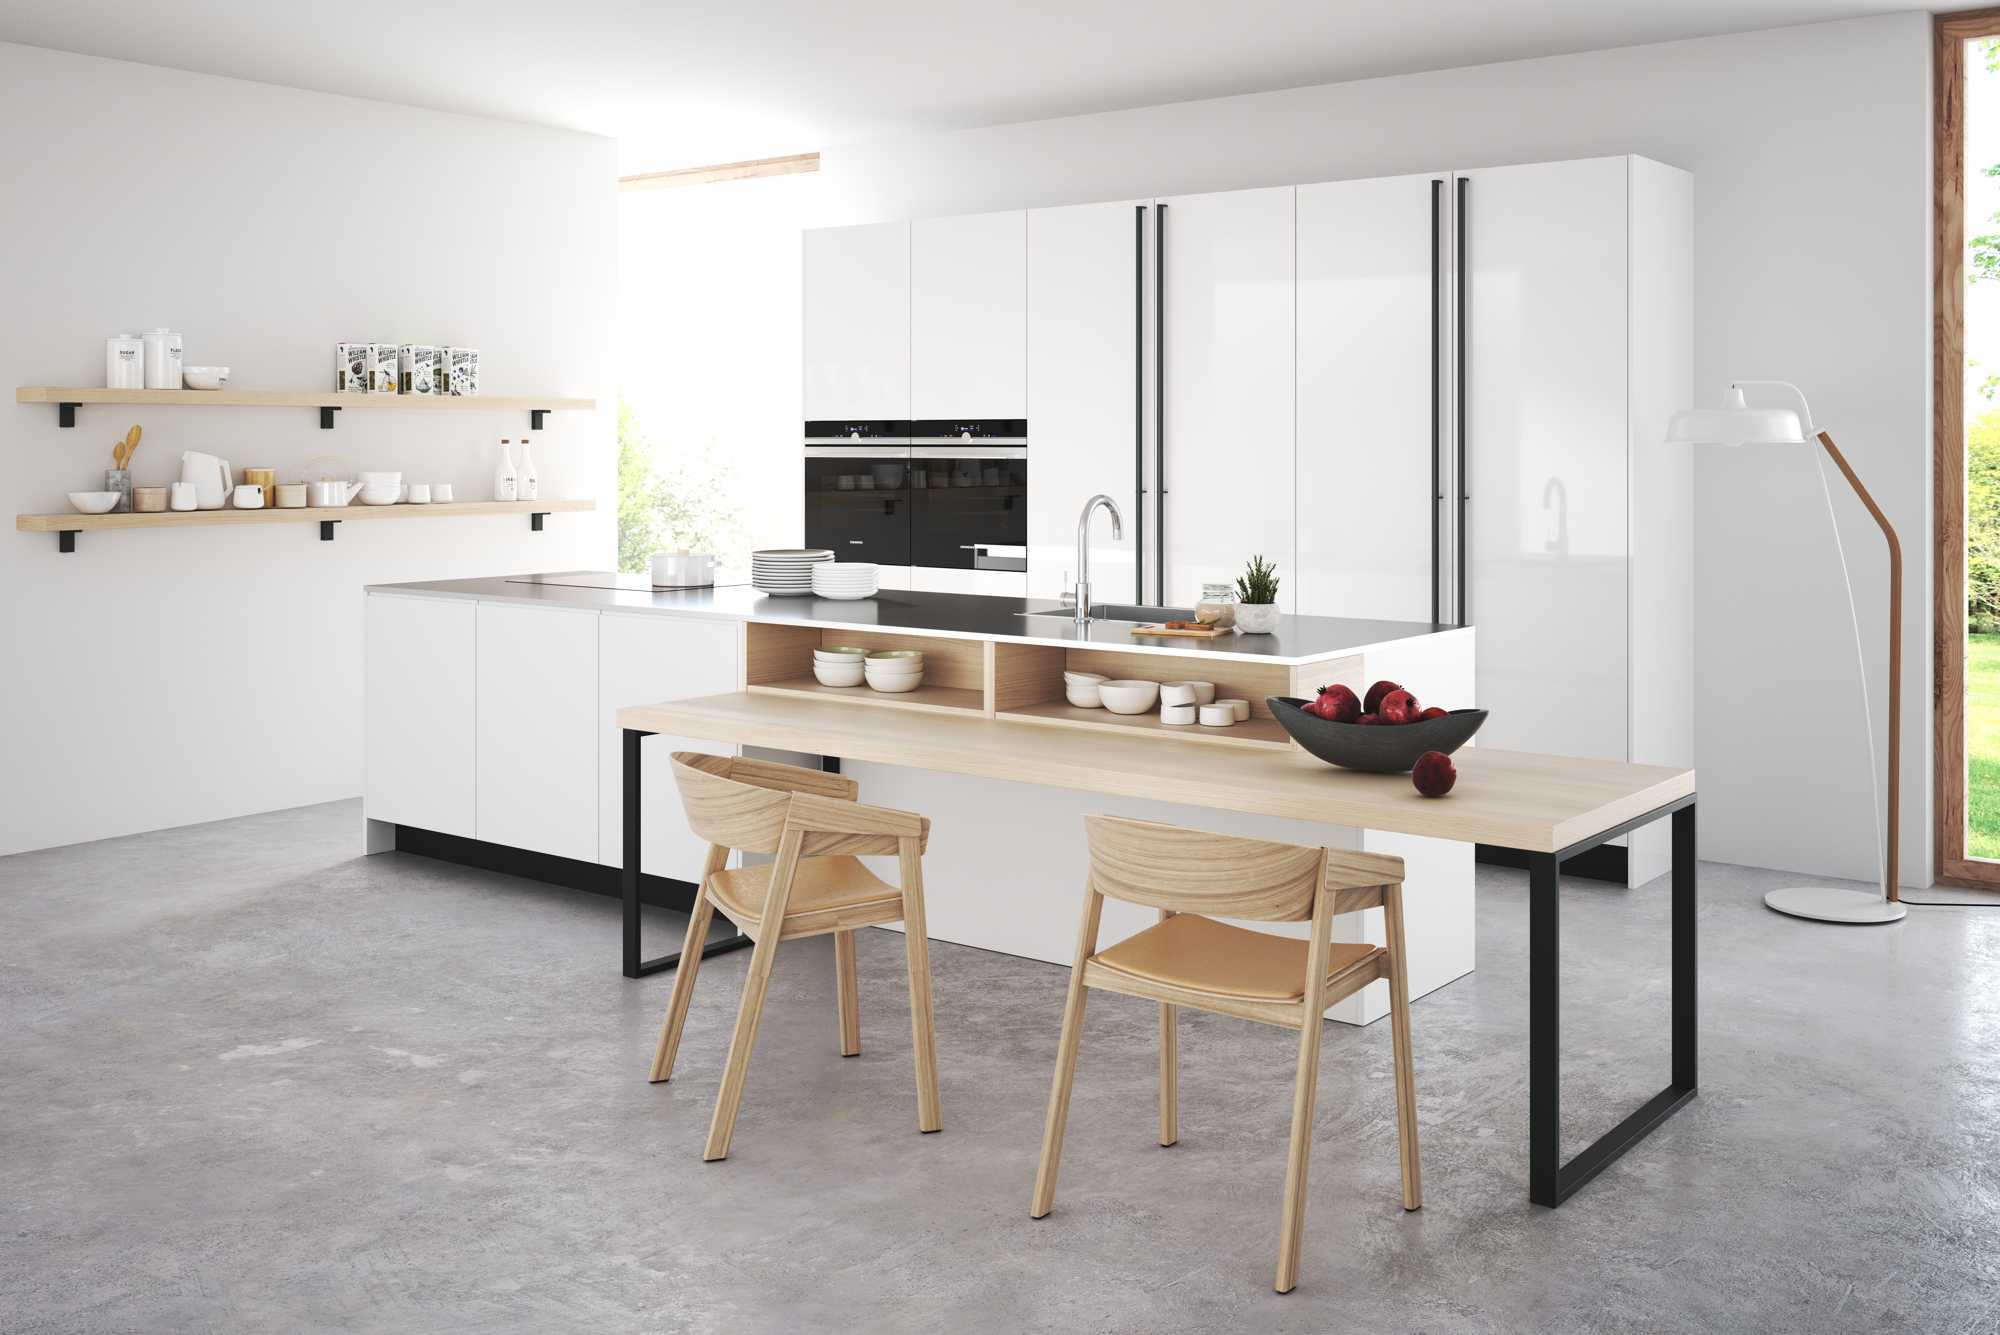 Modern Style Zerox Snow Kitchen With a Large Breakfast Bar